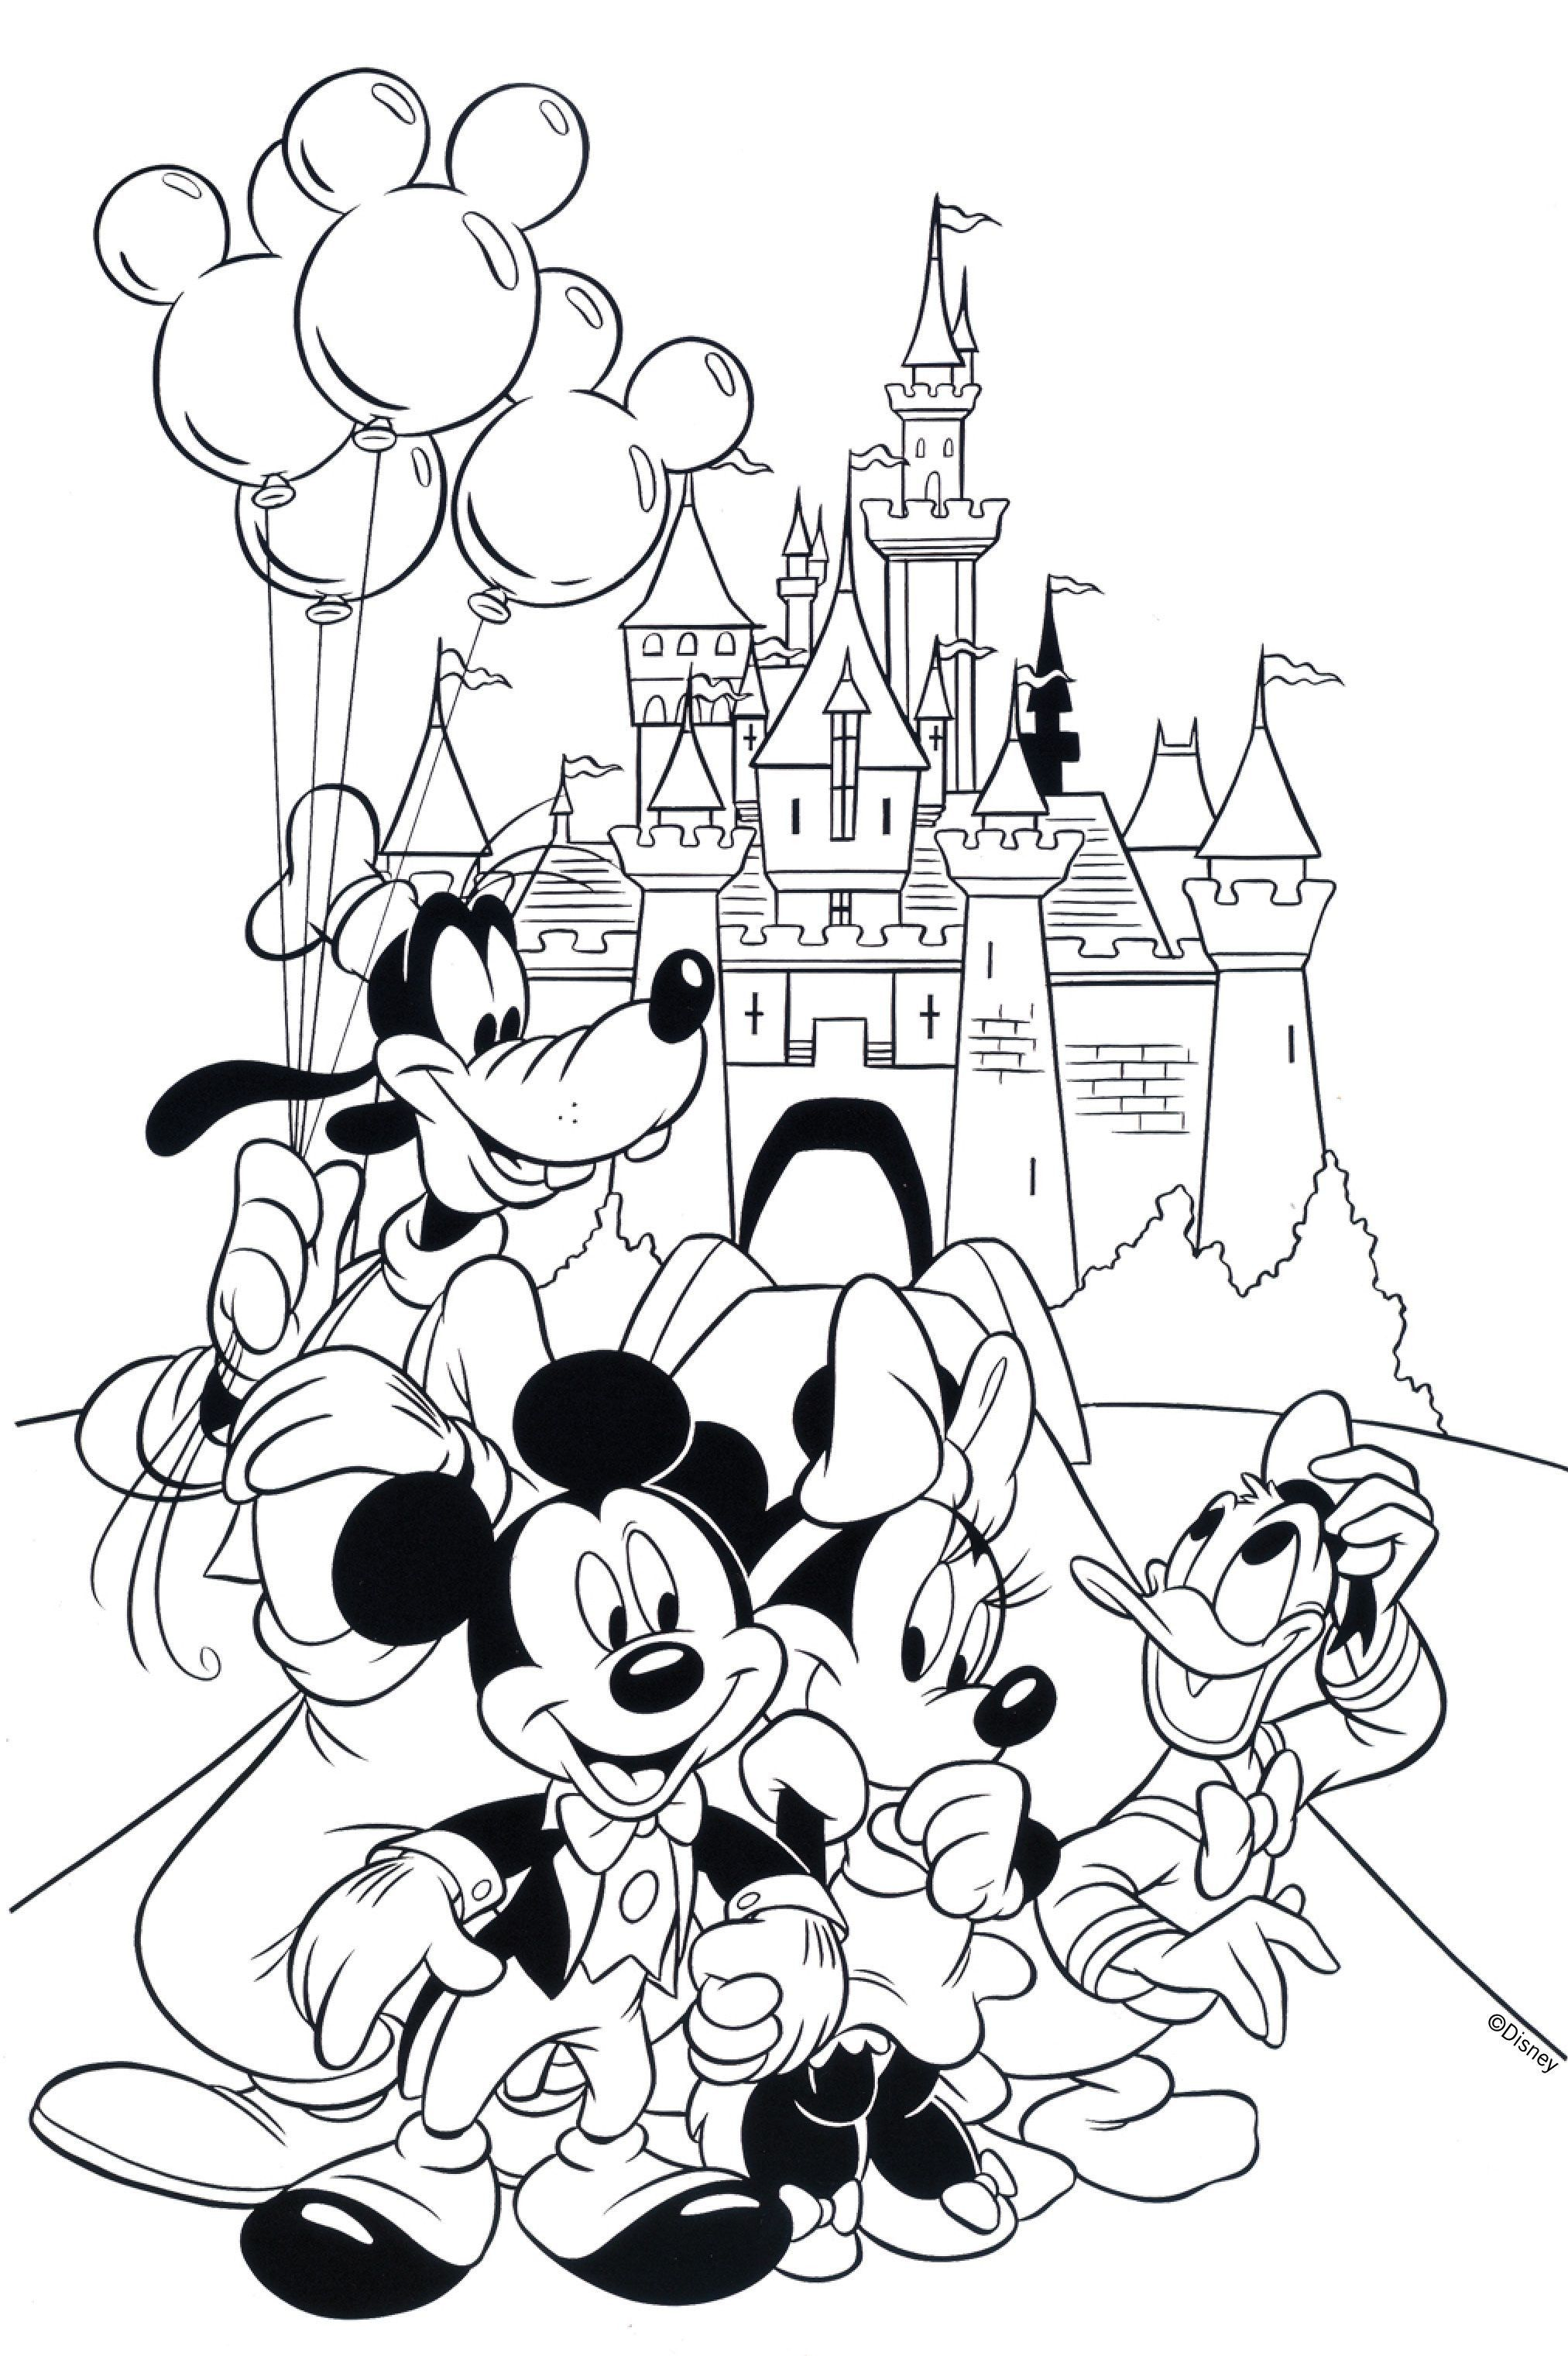 Free Disney Coloring Pages Disney Coloring Pages Disney Coloring Sheets Minnie Mouse Coloring Pages